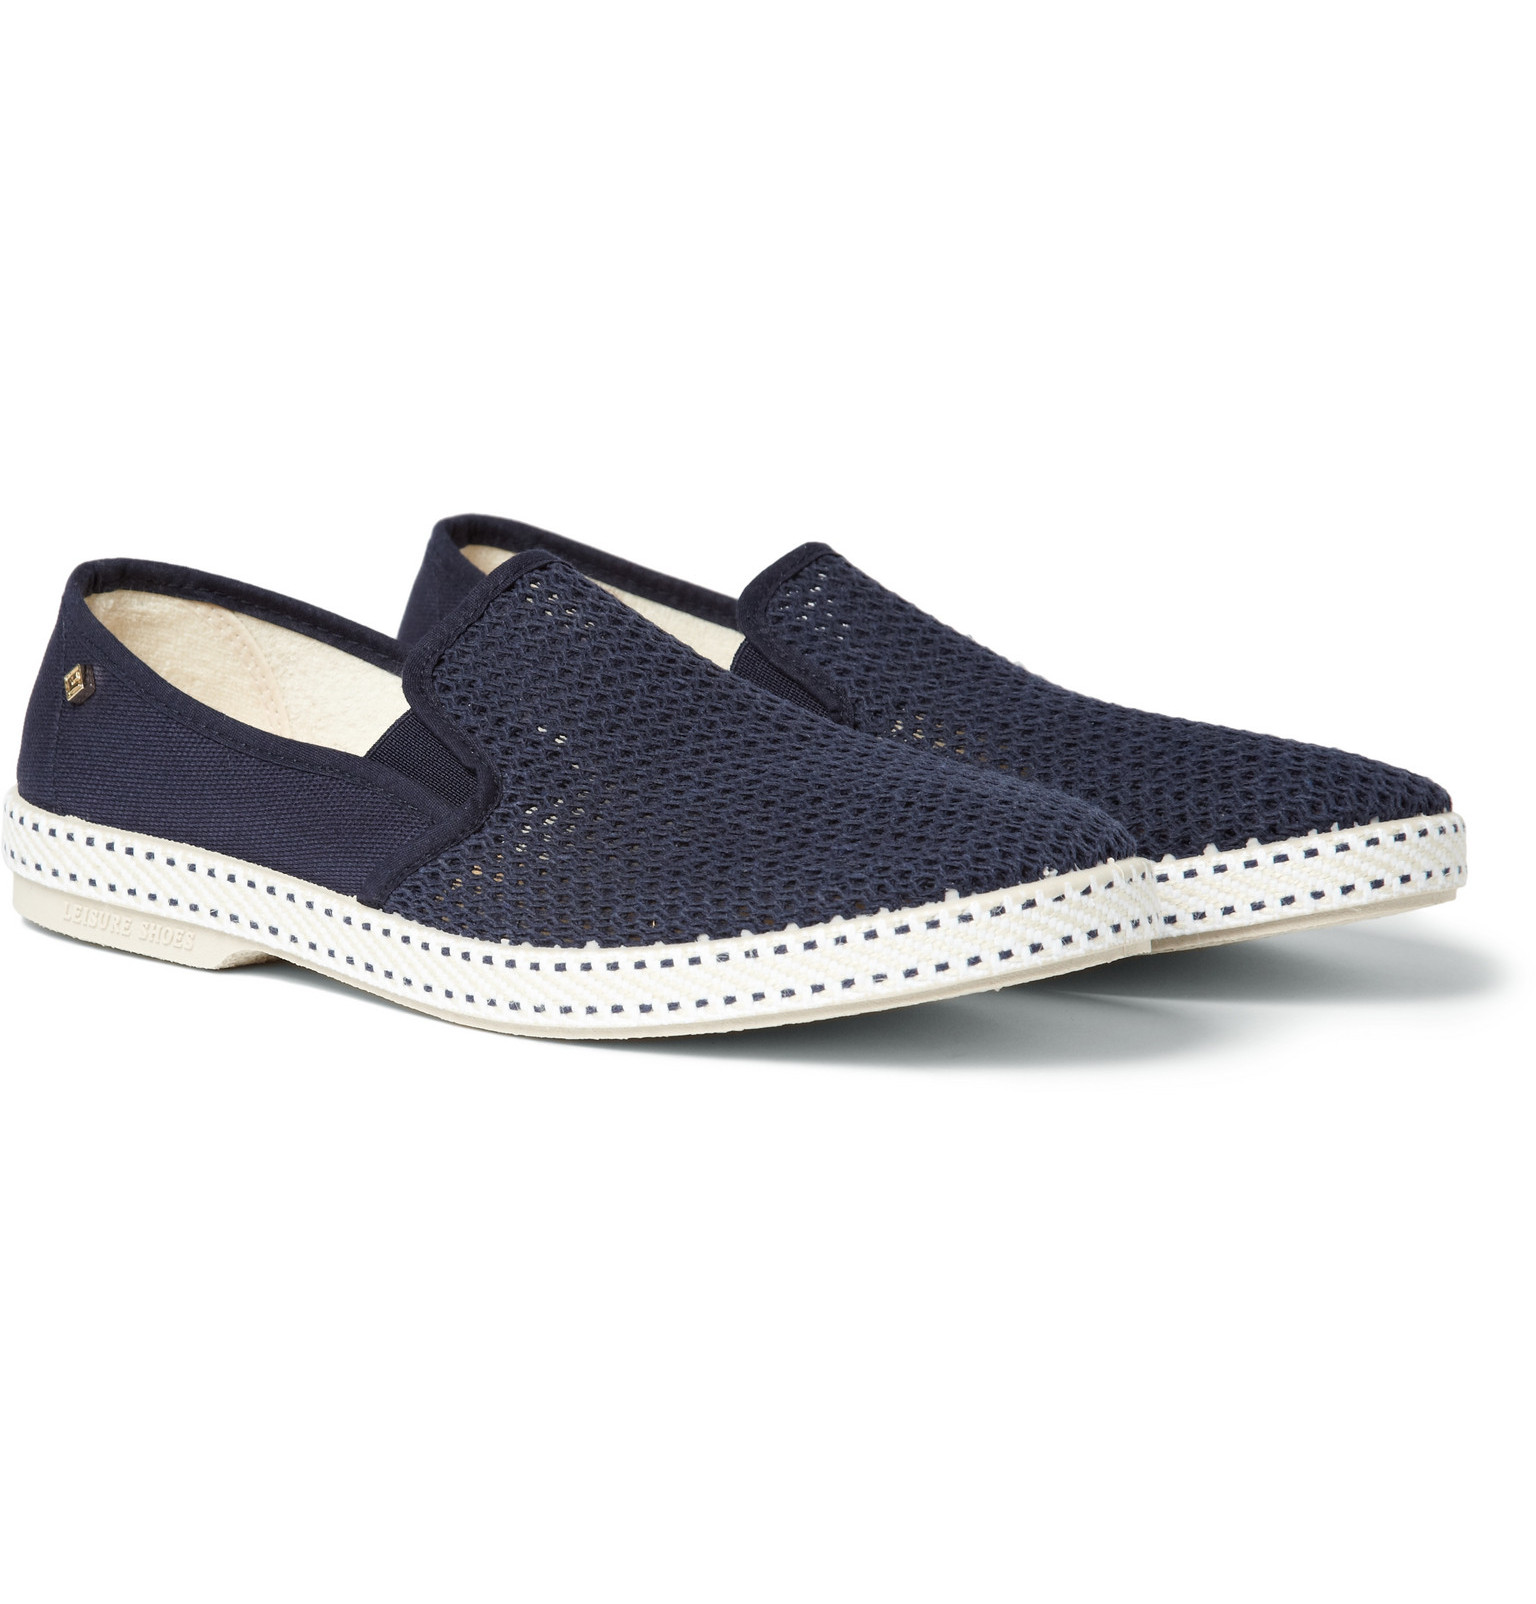 0caa3f43d Rivieras - Cotton-Mesh and Canvas Espadrilles